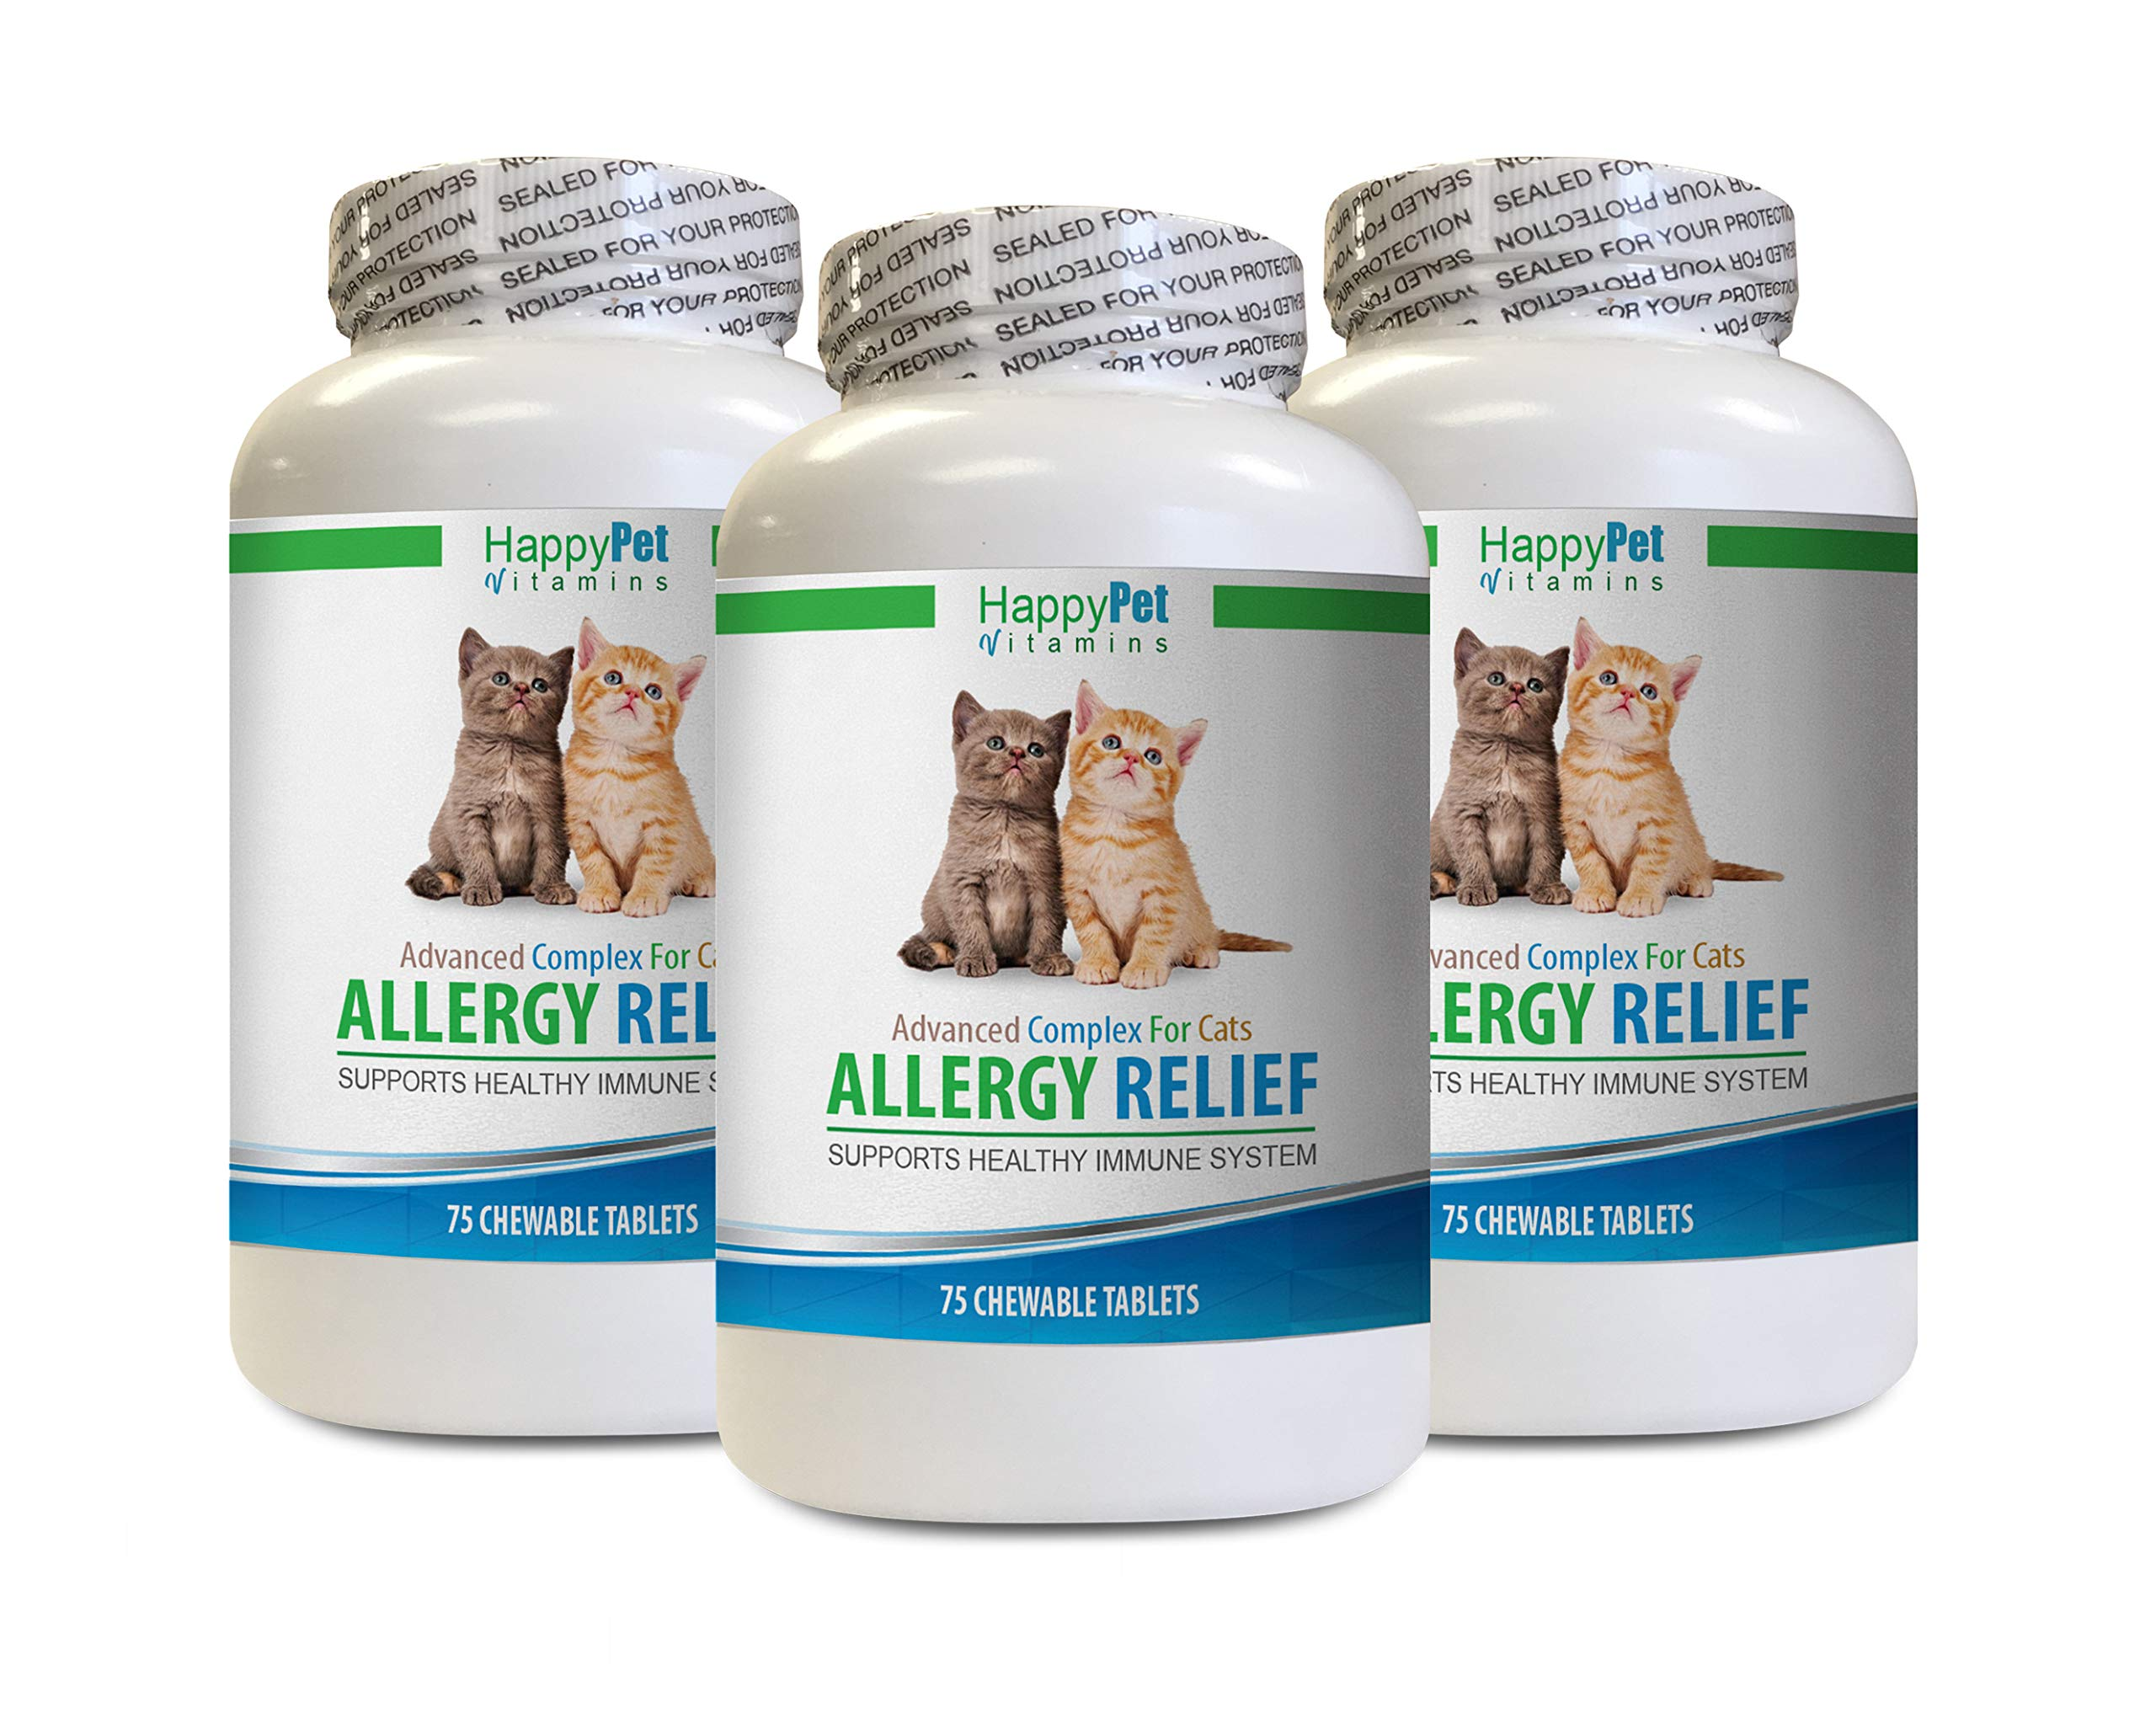 cat Anti Itch Vitamins - CAT Allergy Relief - Supports Immune System - Vet Recommended - Itch Relief - cat Skin Allergy Treatment - 3 Bottles (225 Chew Tablets) by HAPPY PET VITAMINS LLC